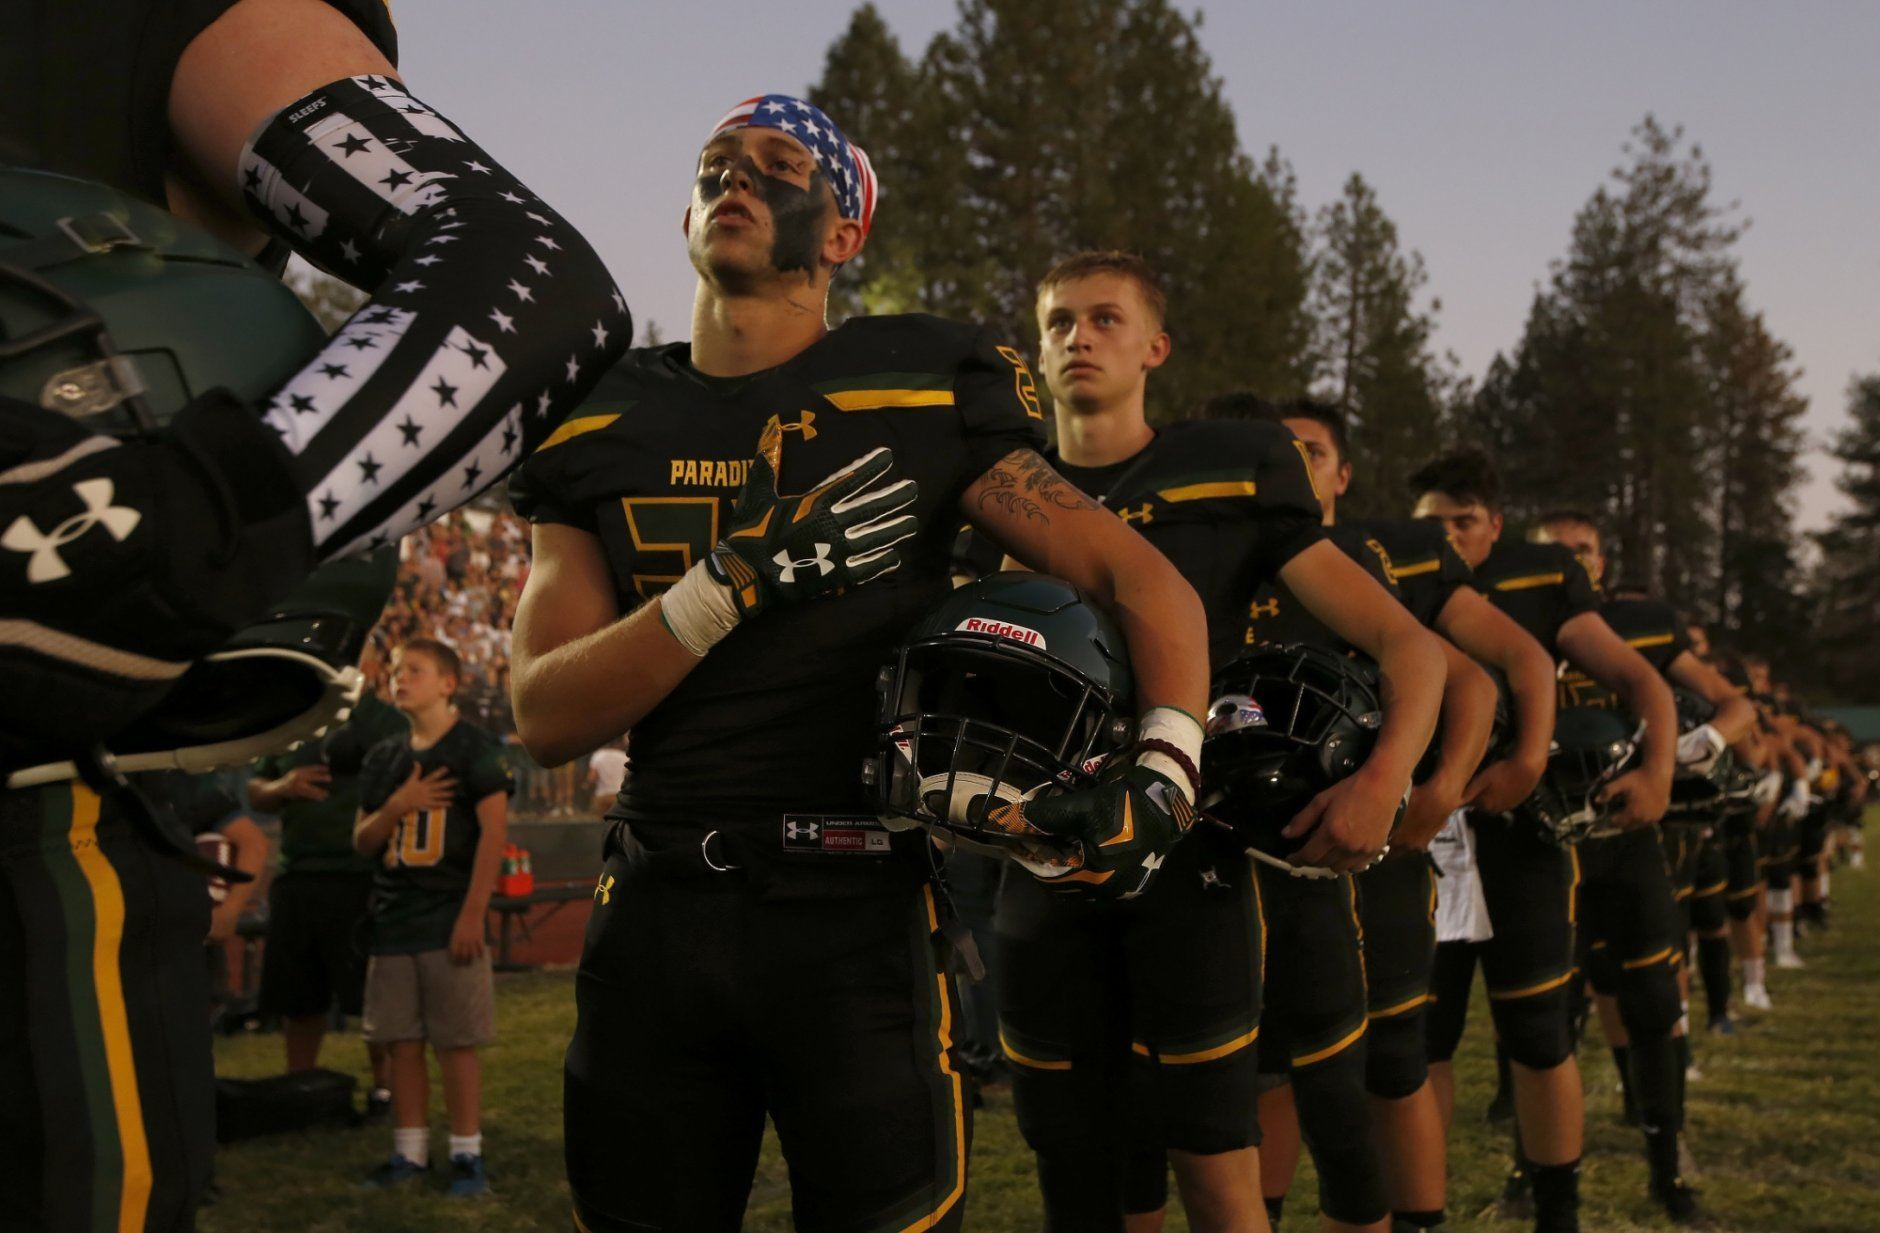 Members of the Paradise High School football team stand for the playing of the national anthem before their game against Williams High School in Paradise, Calif., Friday, Aug. 23, 2019. This was the first game for the school since a wildfire last year that killed dozens and destroyed nearly 19,000 buildings including the homes of most of the players. Paradise won 42-0. (AP Photo/Rich Pedroncelli)